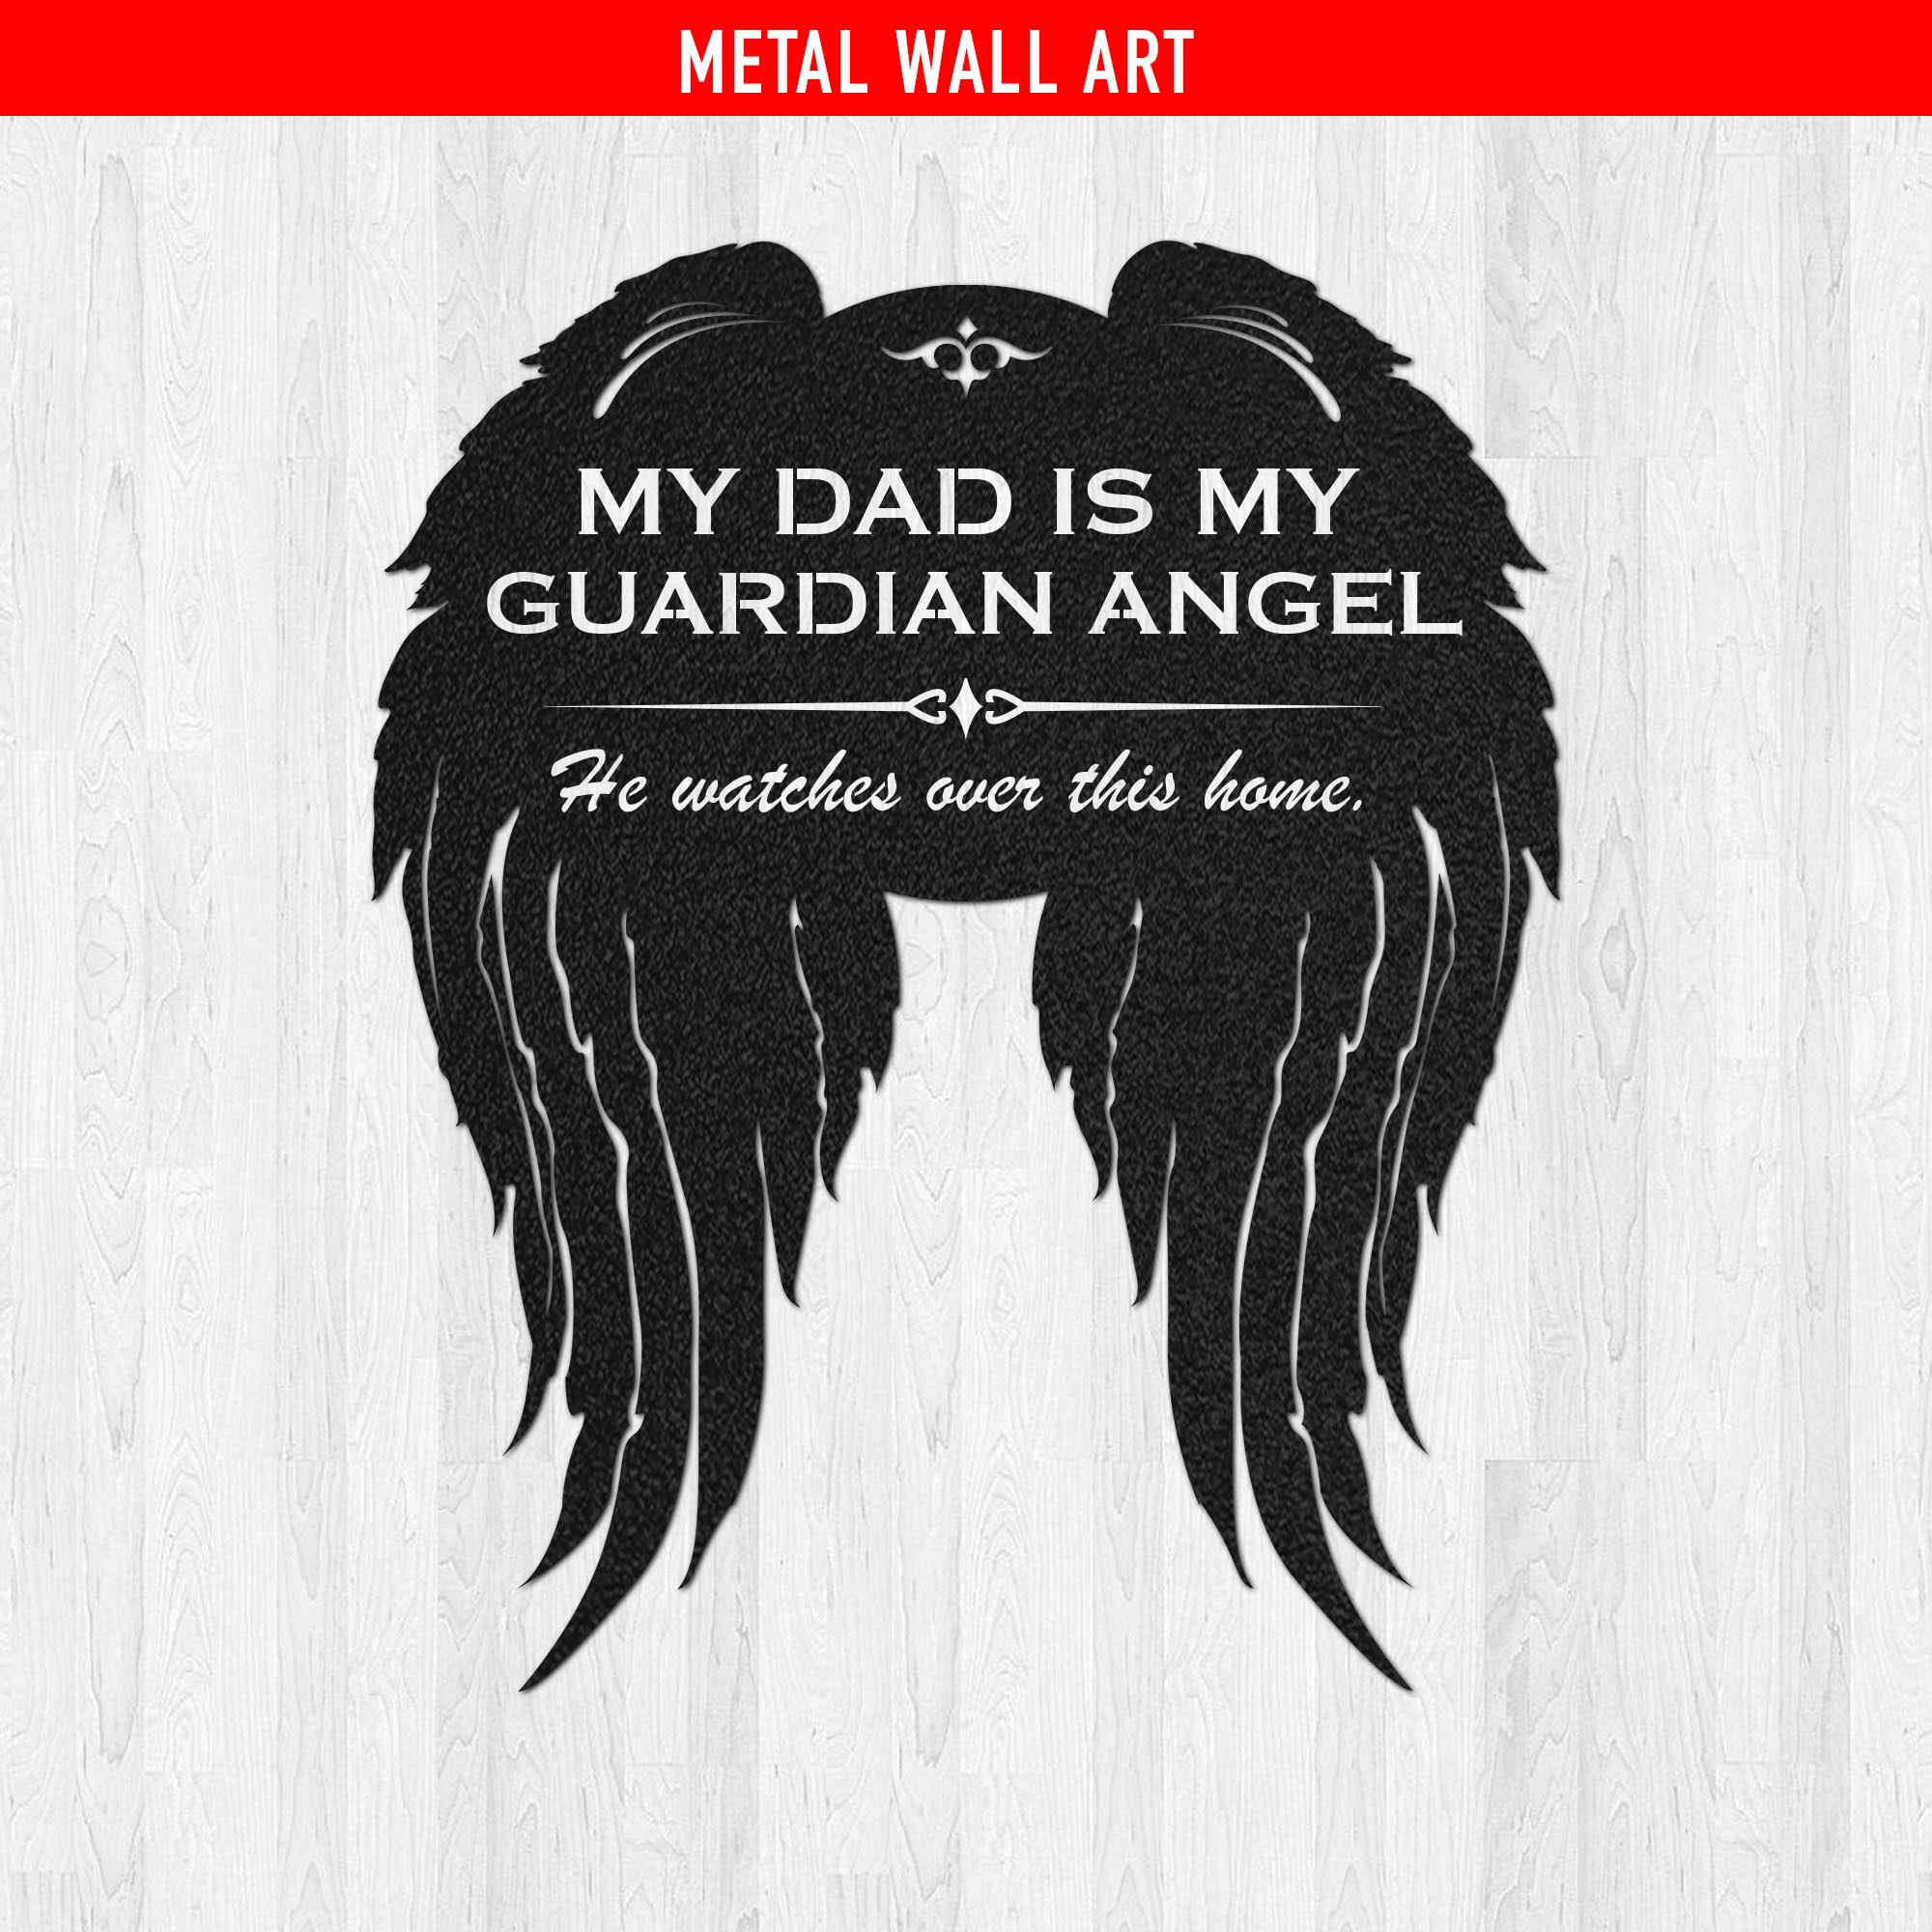 Dad - Guardian Angel Watches Over This Home Metal Wall Sign